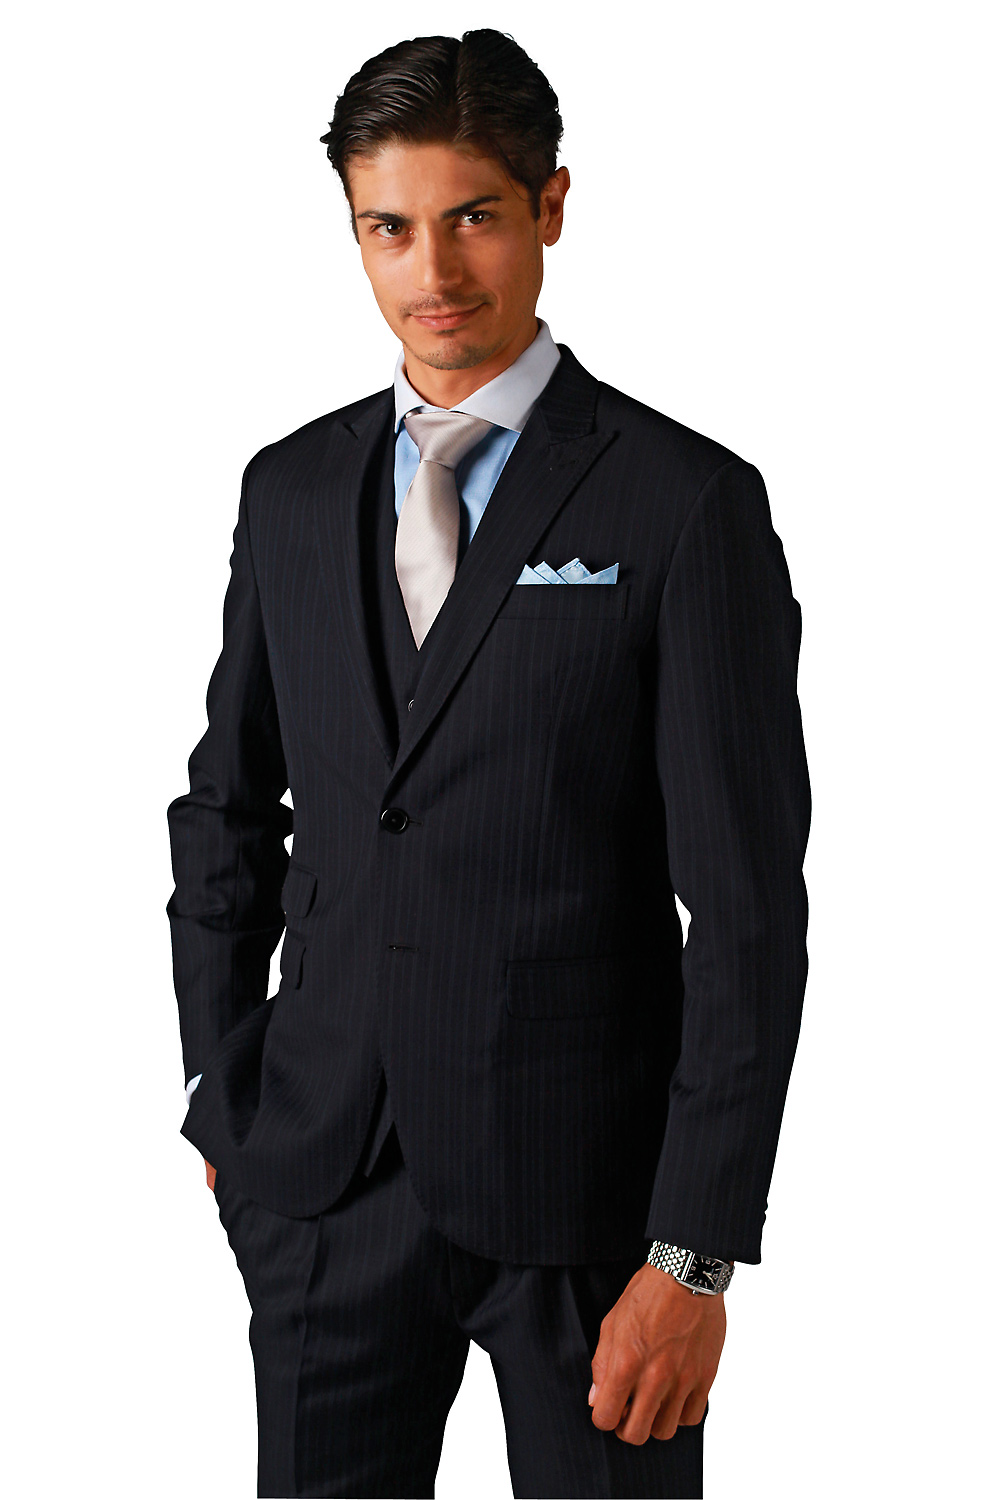 Tailored mens suits, shirts and jackets for all occasions. Customise your fabric and style with guaranteed fit! Enquire now @ Montagio Sydney & Brisbane.